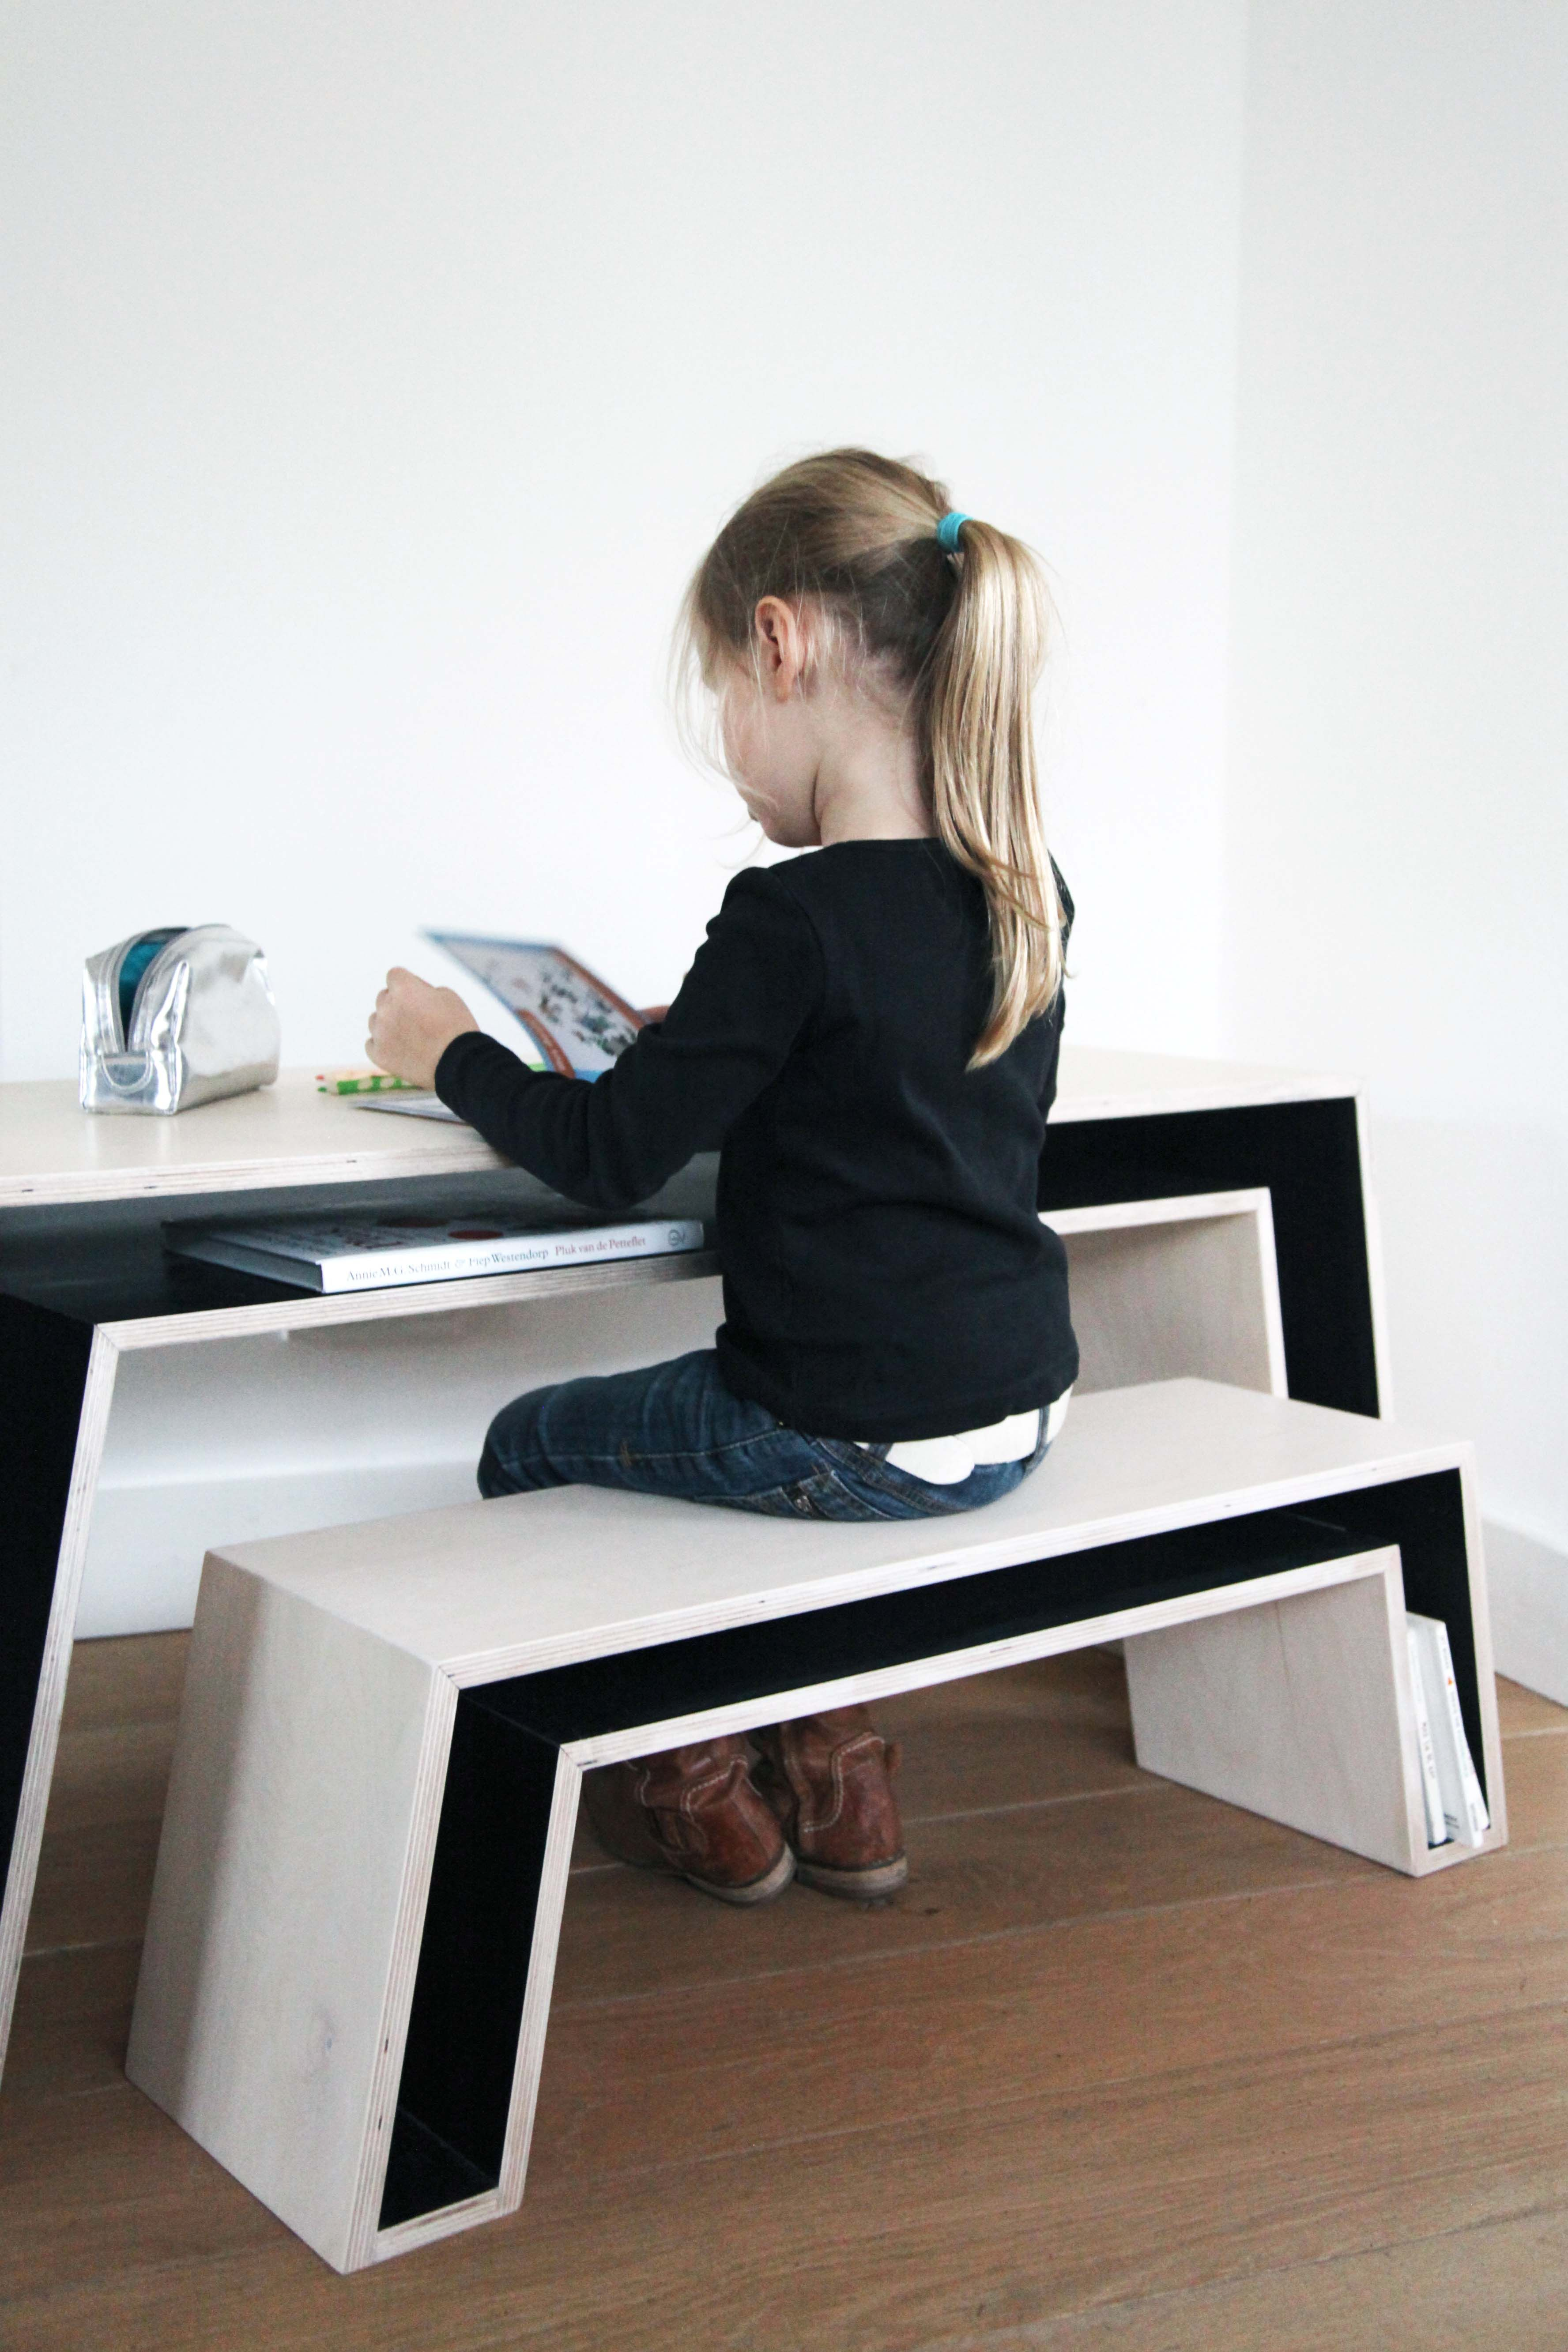 amilyn op 4zitter. whatever that means. it's the caption that came with the pic. this desk set is cool.